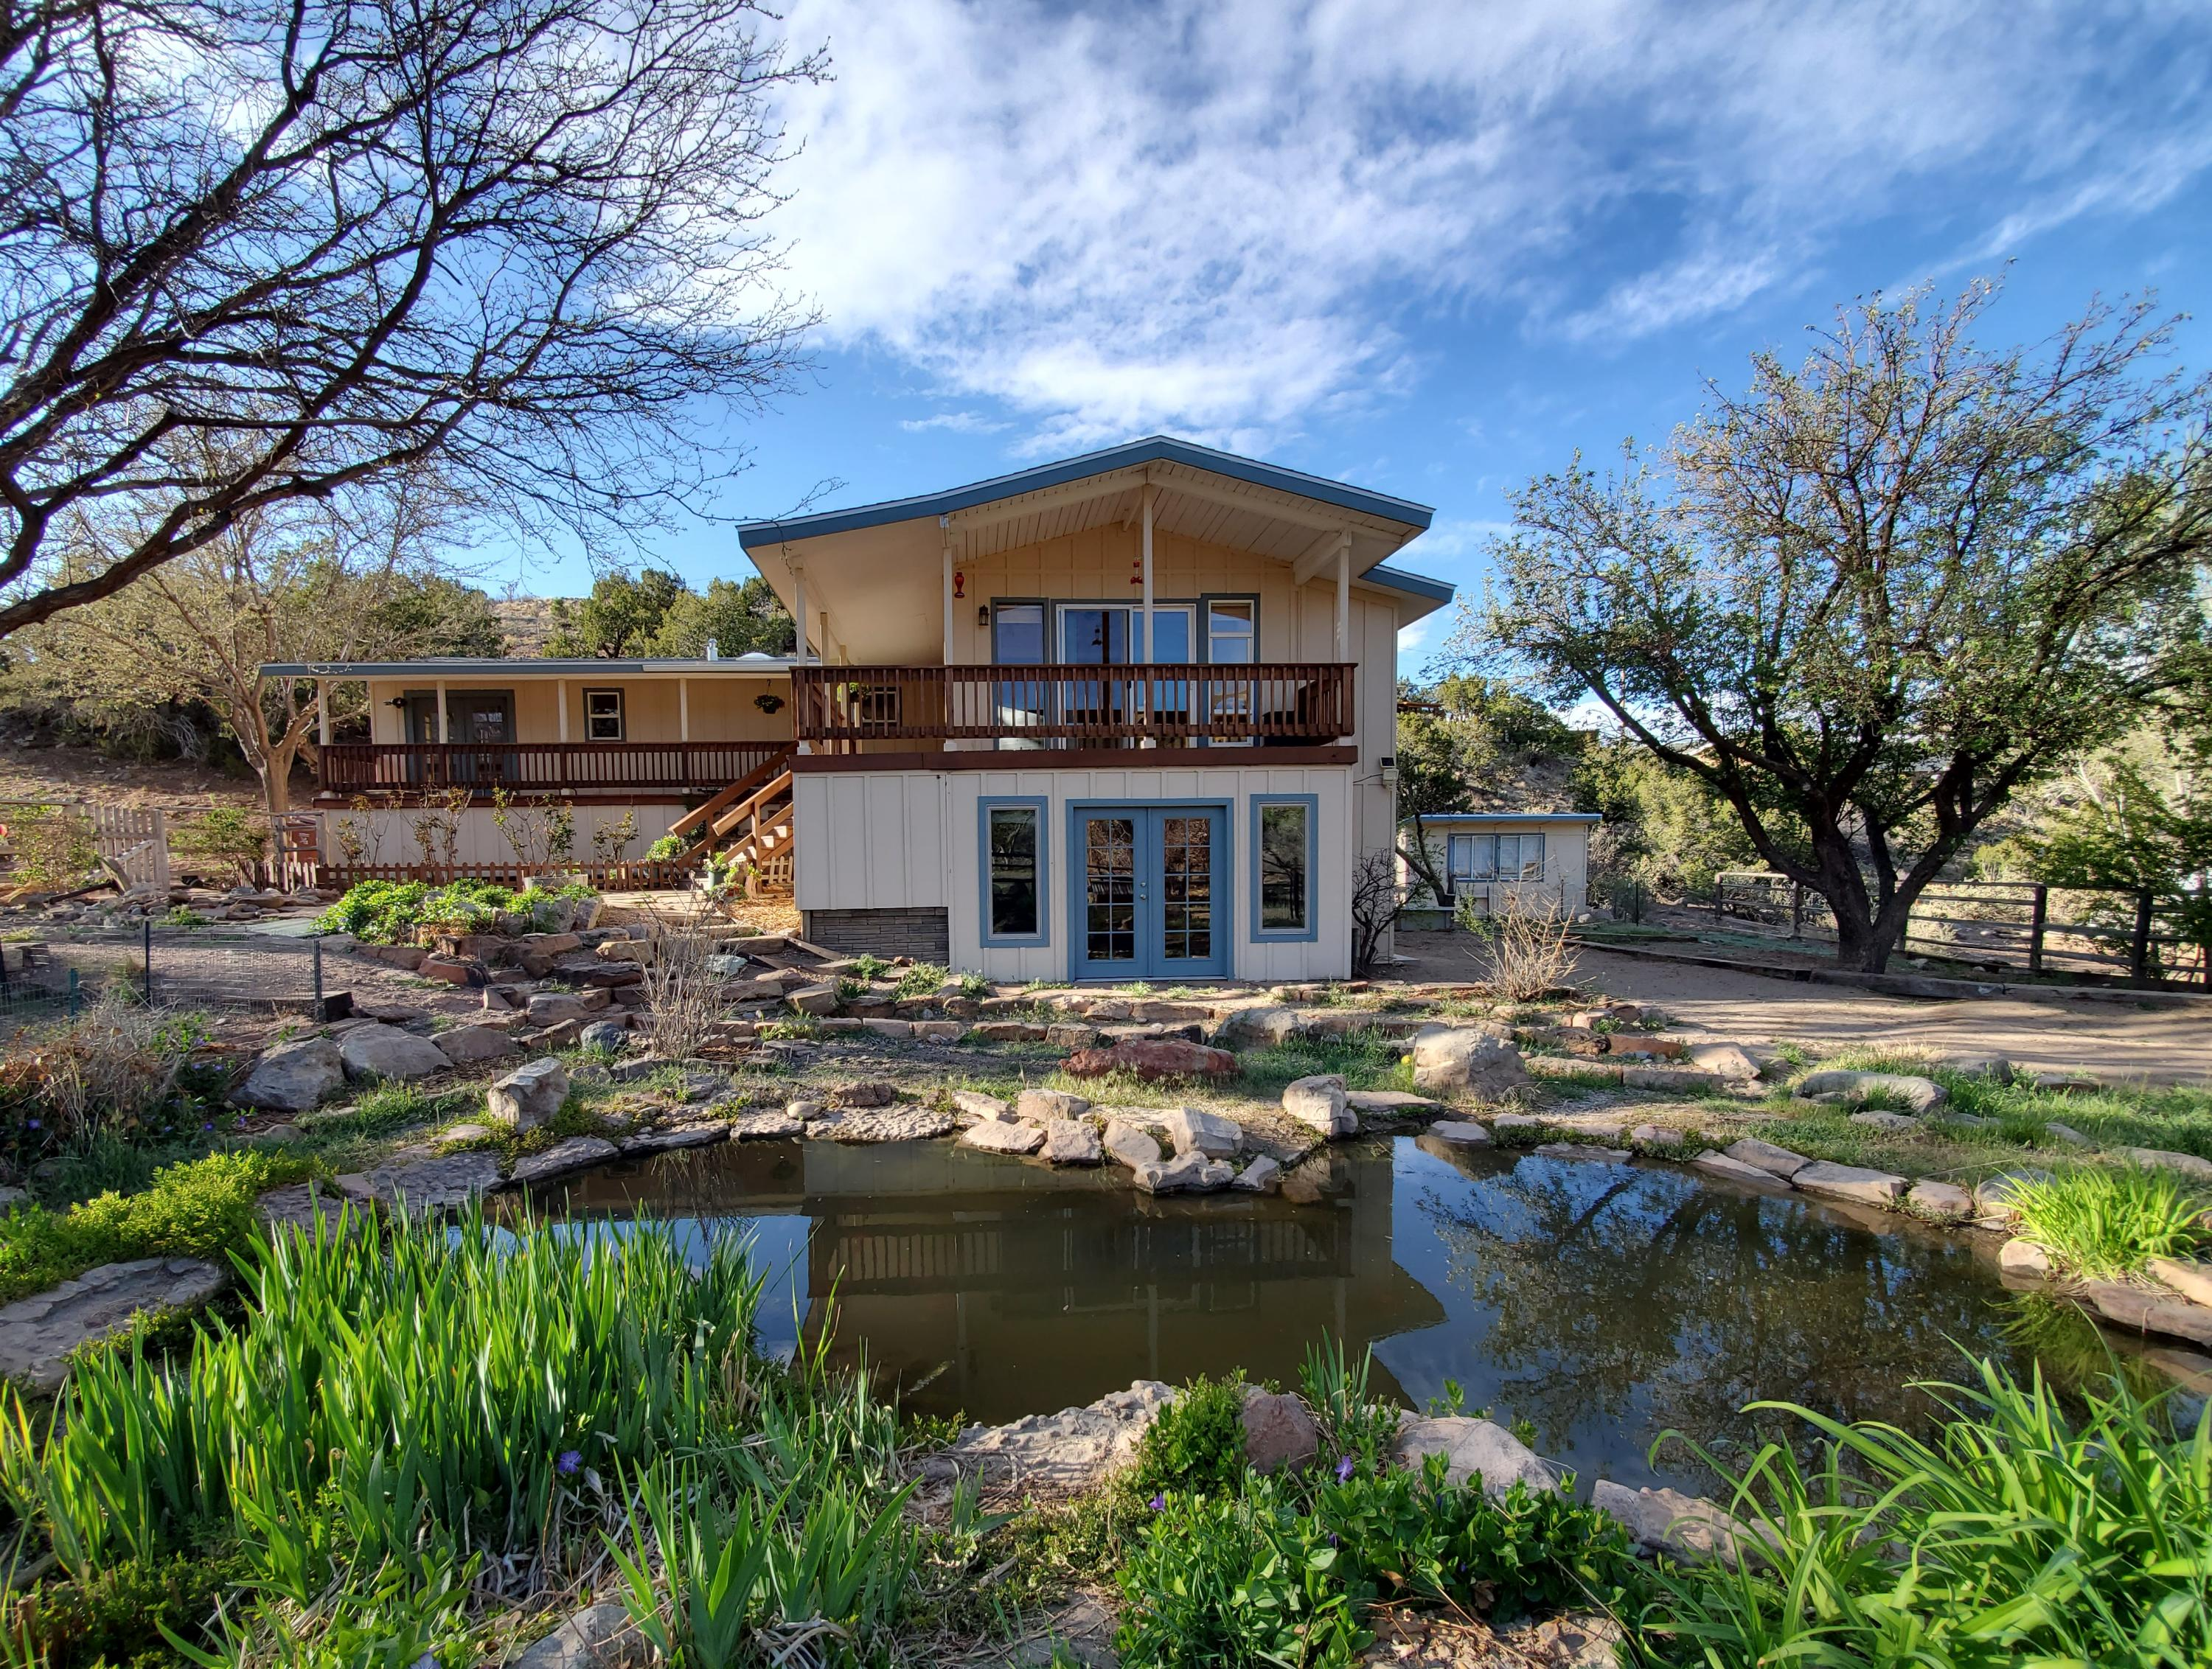 Open House Sat 11-3 & Sun 11-4.Freshly repainted ranch style home, 3-4 BR,1 3/4 bath with wonderful views of the Sandia Mountains nestled in a  private area supportive of gardening & livestock. Rustic wood-burning fireplace in living room with refreshed oak wood floors throughout. Open modern kitchen with stainless steel appliances. Walk-out basement with French doors opens to relaxing lily pond. All other rooms are on main level. Covered wrap-around deck. Storage sheds and modern chicken coop (which is currently home to mother cat & 3 week old kittens so please don't open door but peek thru the window). Horse area. Garden & Fruit Trees.Membership in the Las Huertas Community Ditch Association, which provides irrigation water to the property, can be obtained by paying new membership